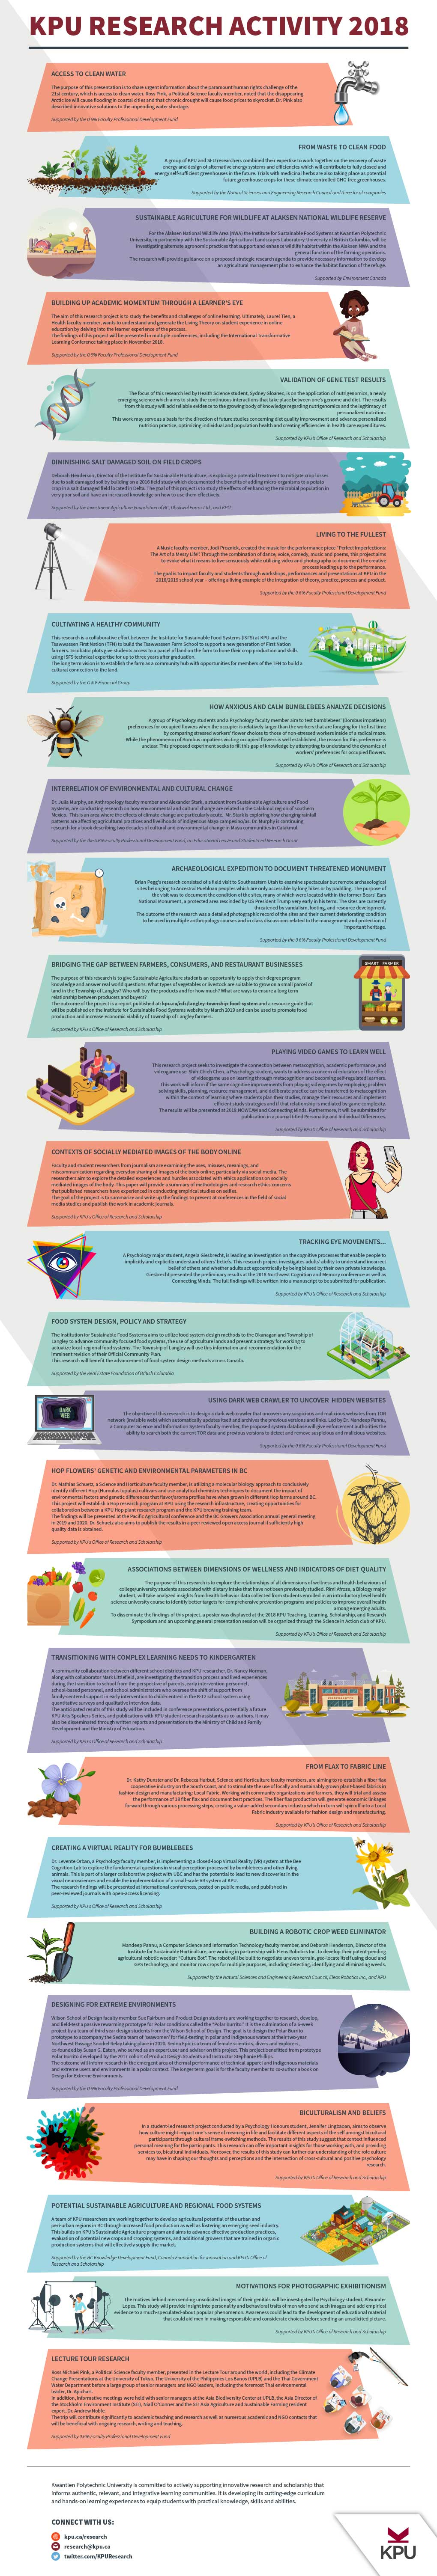 2018 Scholarly Infographic KPU Research